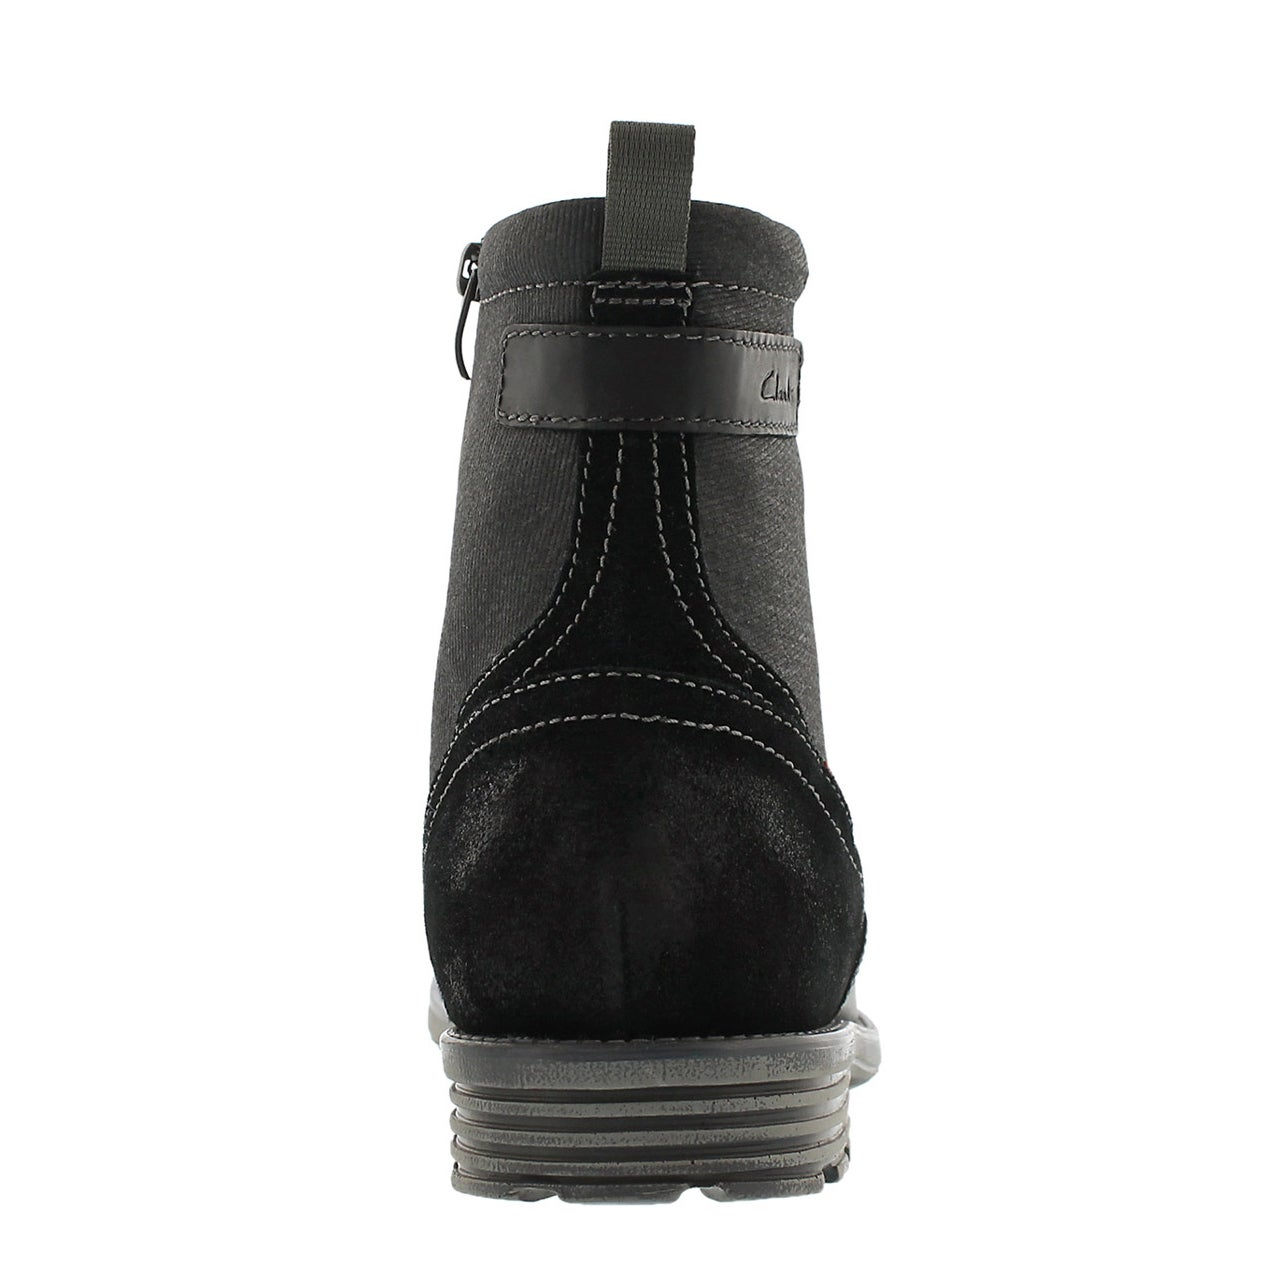 Mns Guard Top black slip on ankle boot